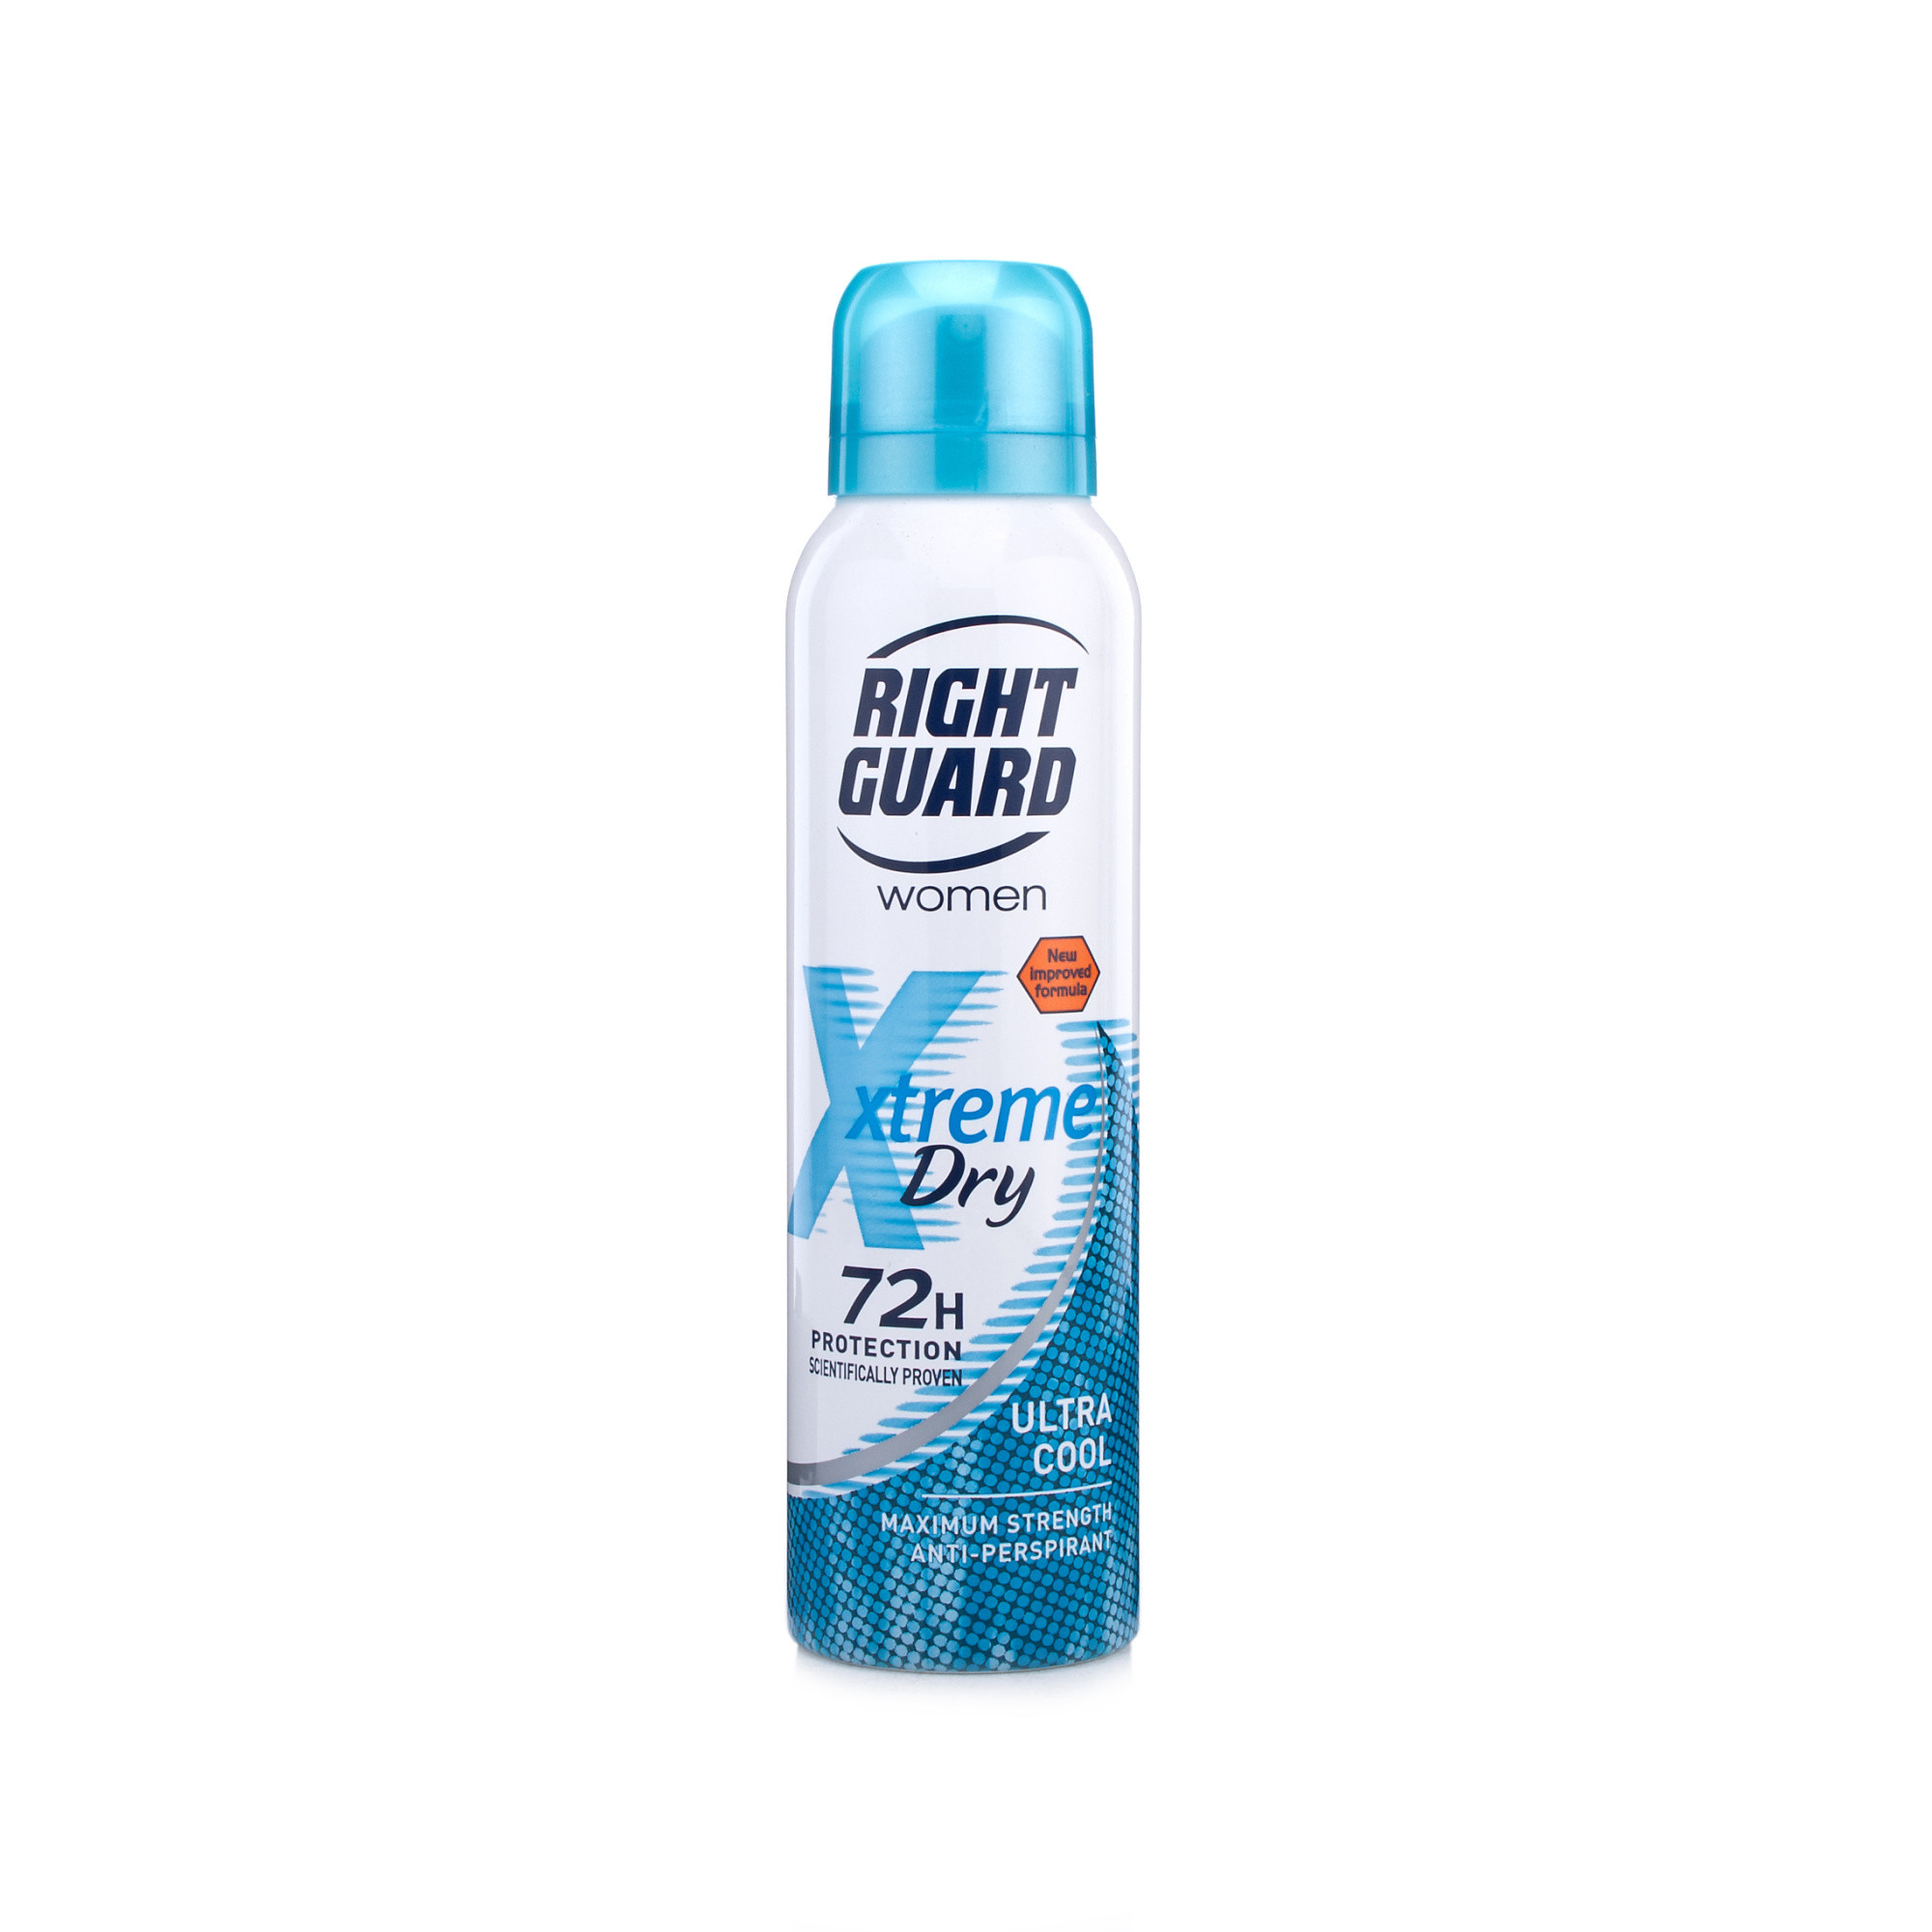 Right Guard Women Xtreme Ultra Cool 72hr Anti-Perspirant Deodorant